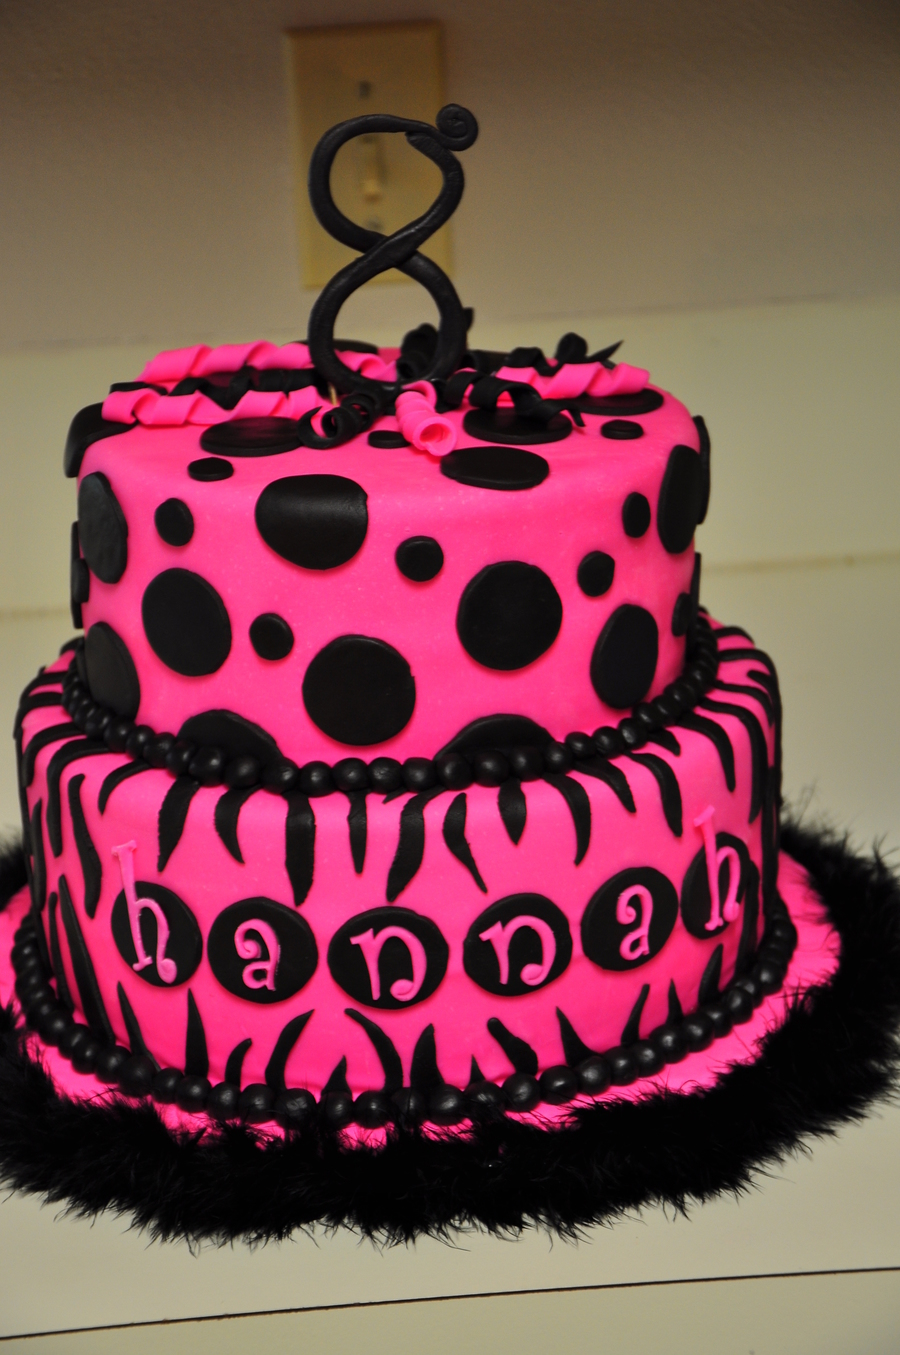 color combinations for birthday cakes ; zebra-birthday-cakes-hot-pink-and-black-zebra-birthday-cake-on-cake-central-black-and-pink-color-combination-cake-design